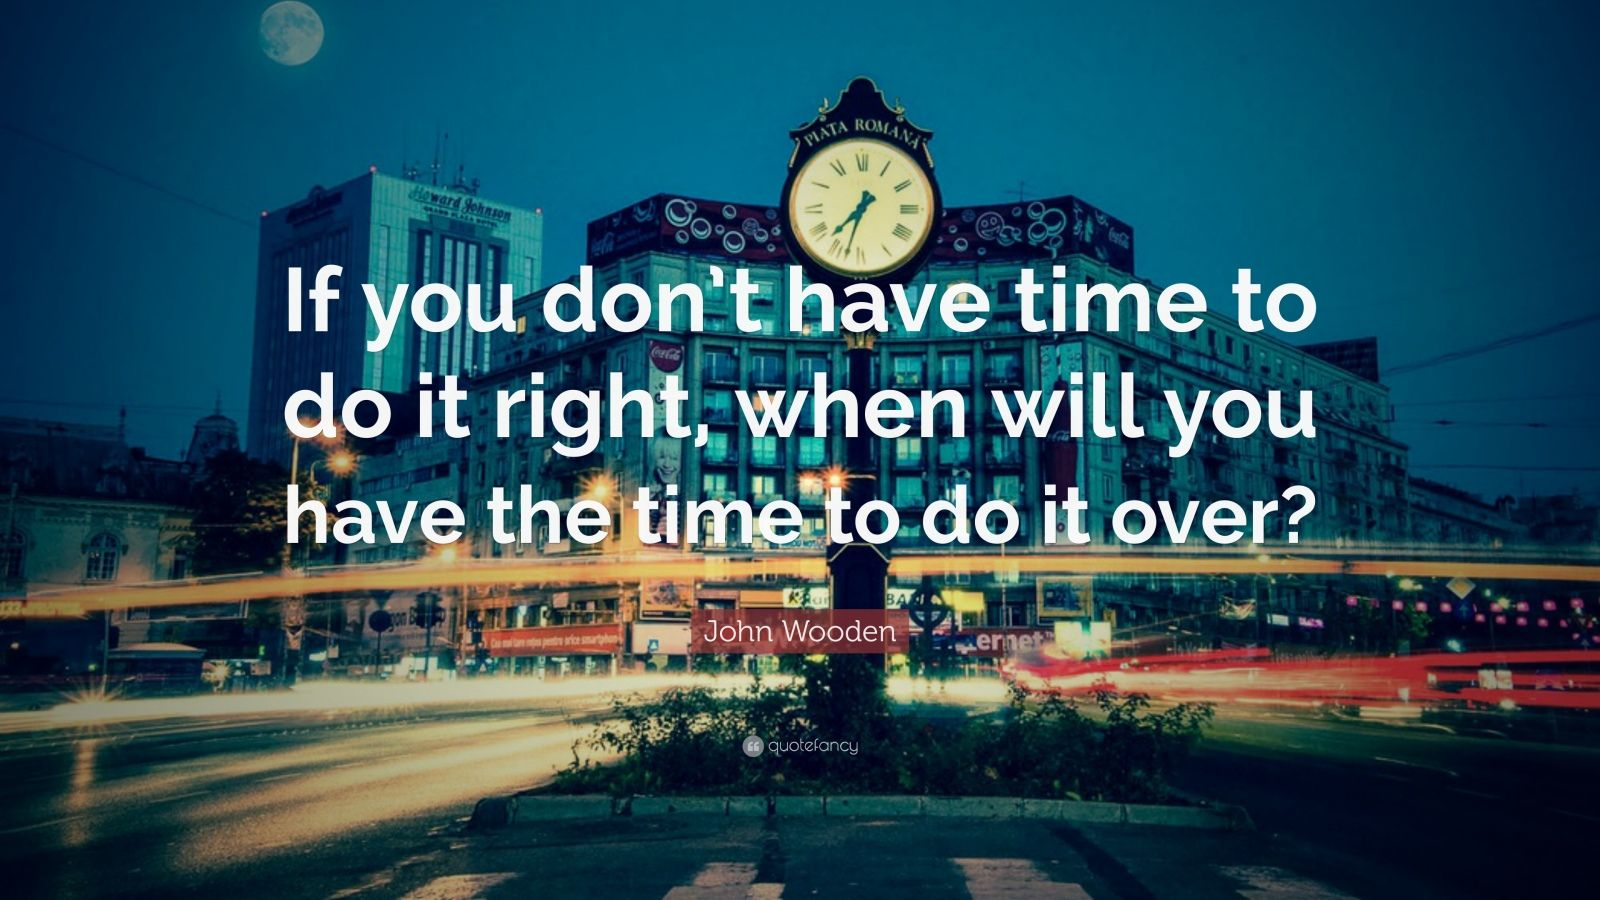 Theodore Roosevelt Quotes Wallpaper John Wooden Quote If You Don T Have Time To Do It Right